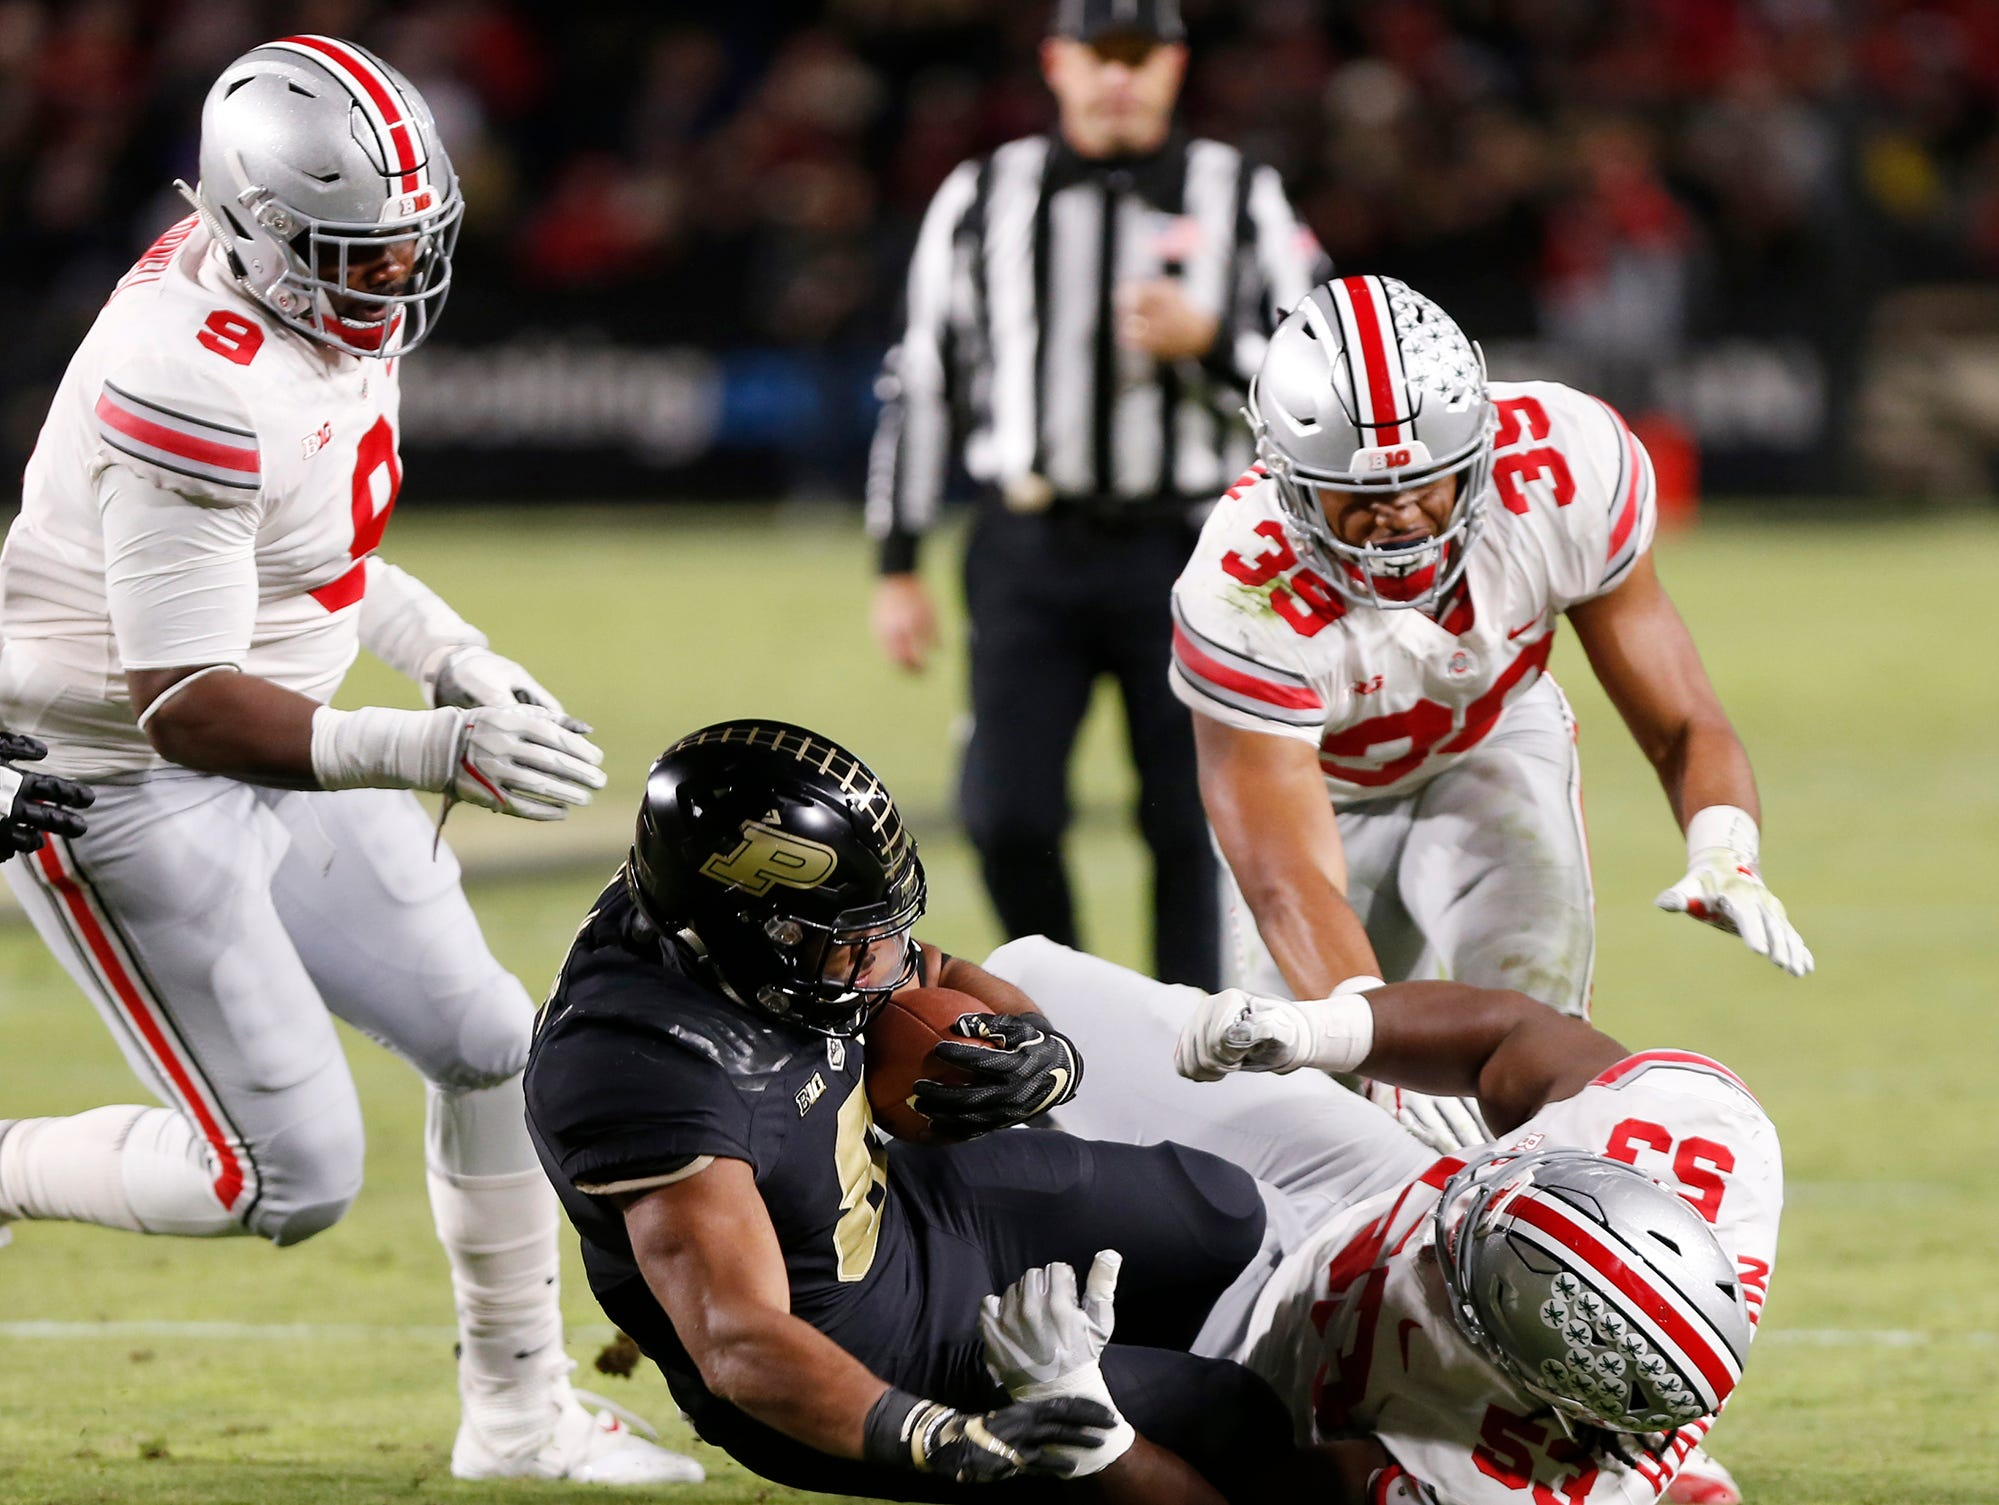 Markell Jones with a first half carry against Ohio State Saturday, October 20, 2018, at Ross-Ade Stadium. Purdue upset the No. 2 ranked Buckeyes 49-20.